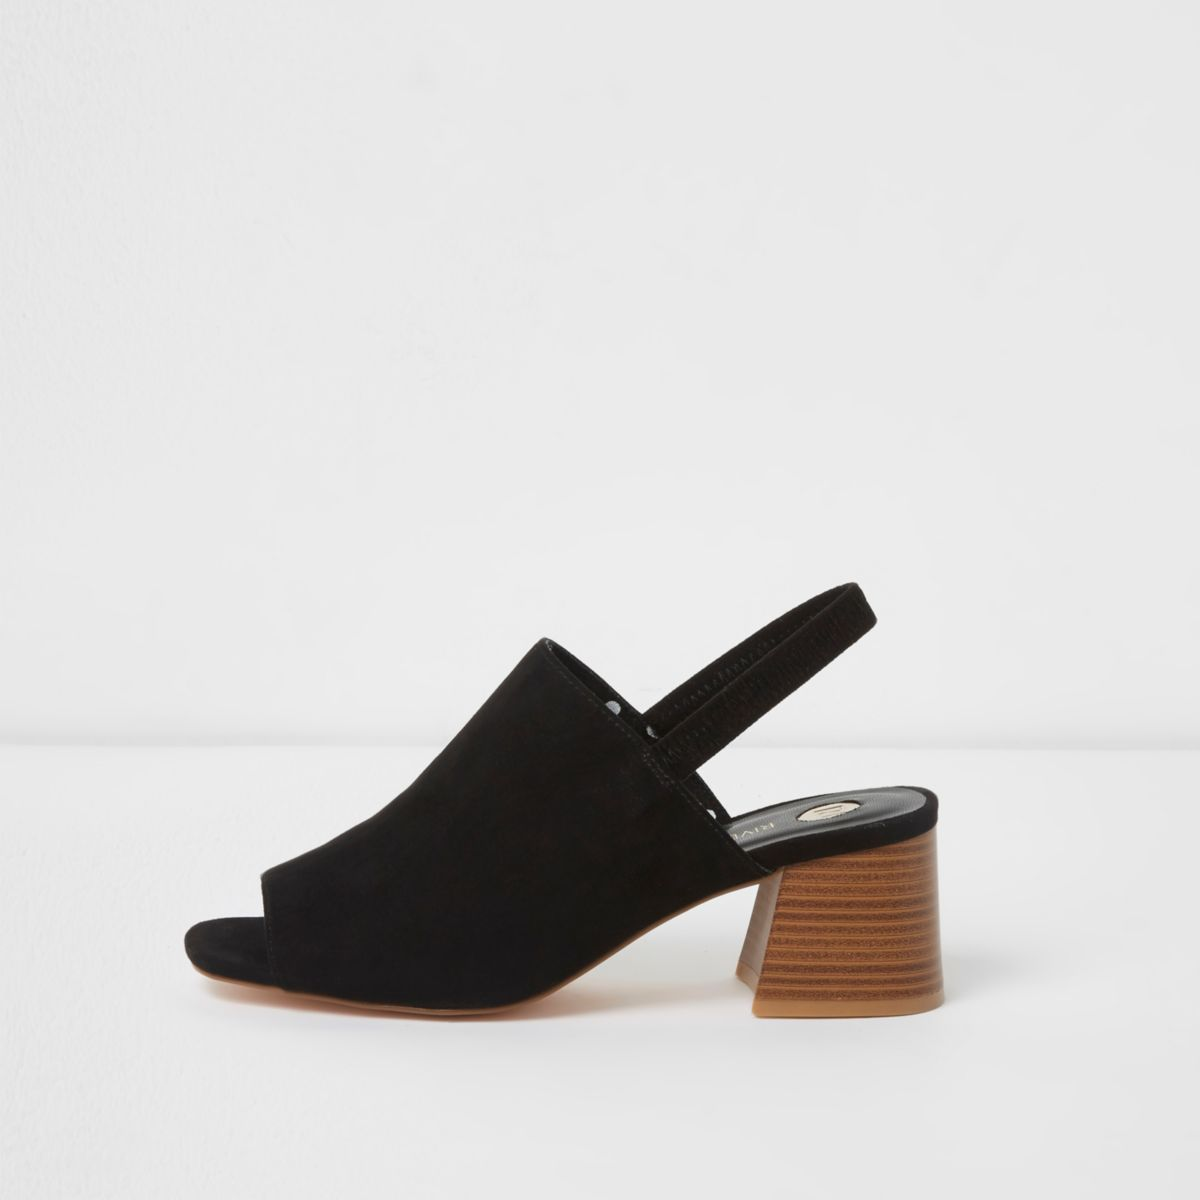 River Island Womens sling back block heel mules